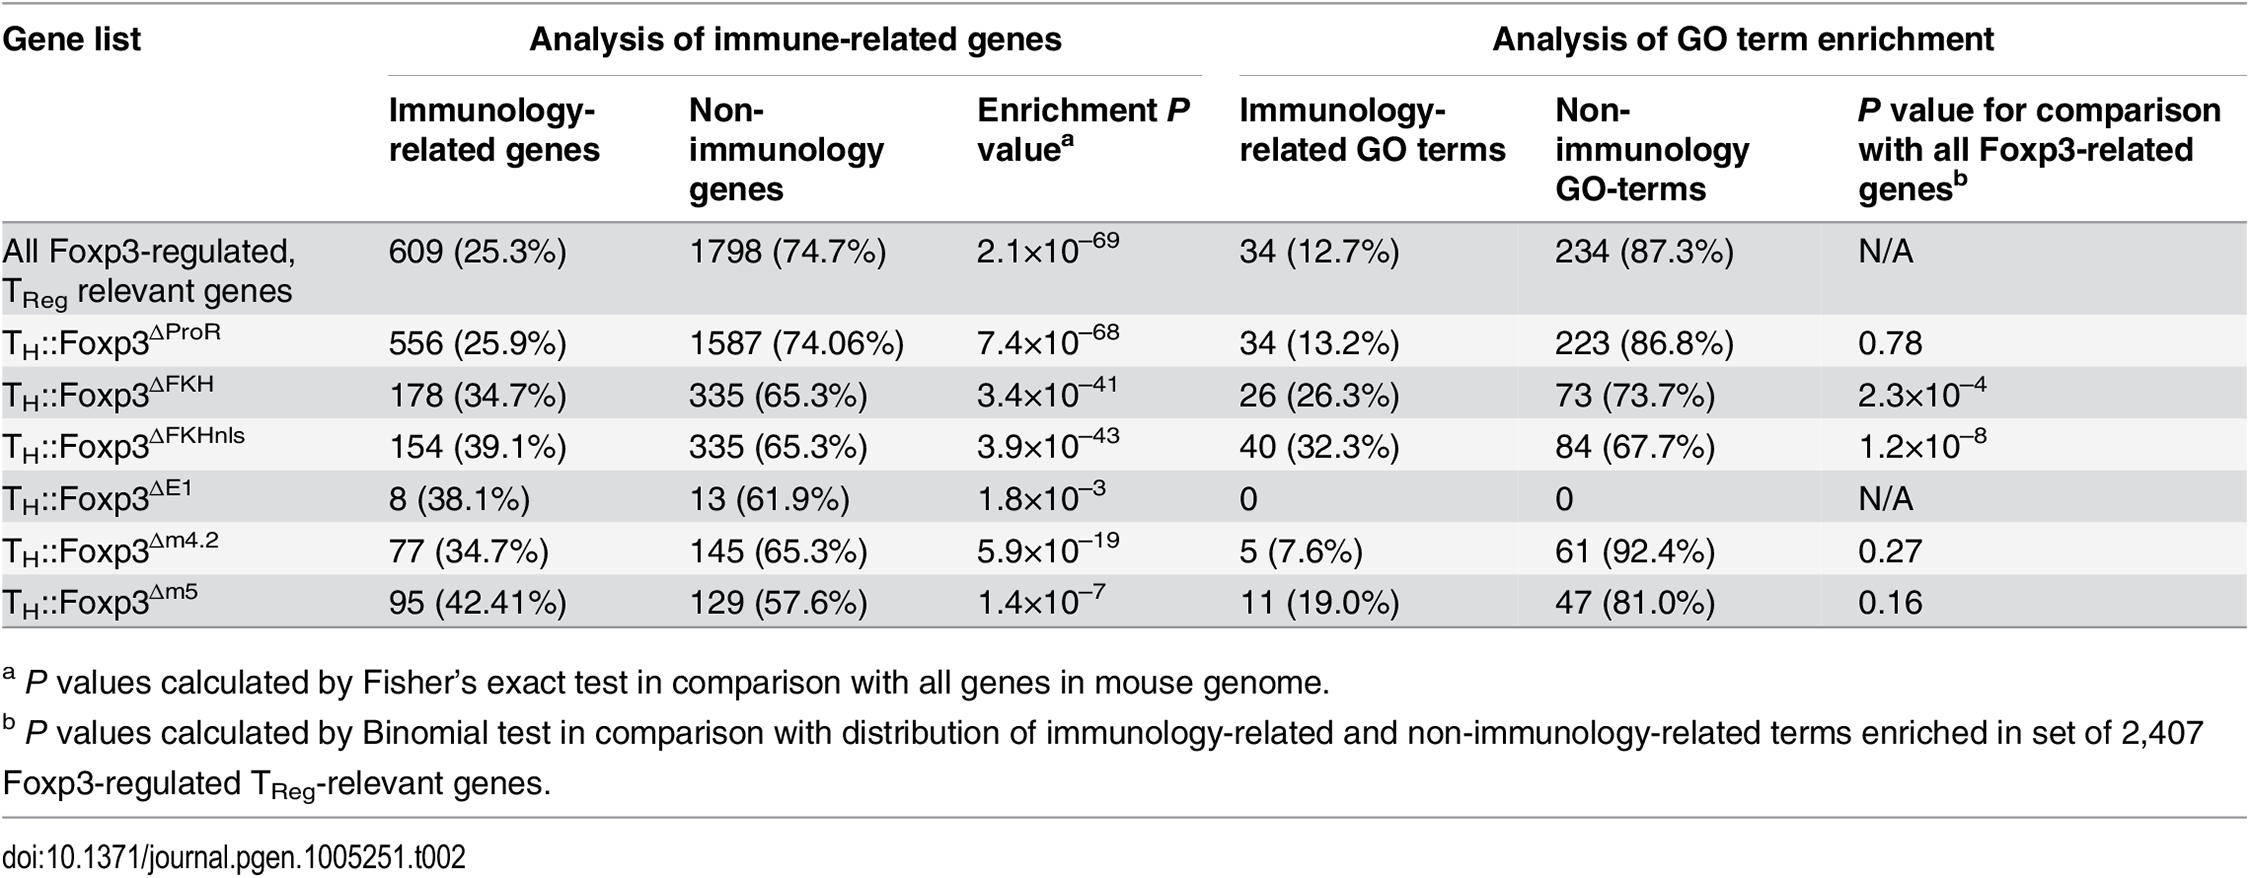 Analysis of immunology-related genes and enriched GO terms within gene lists.